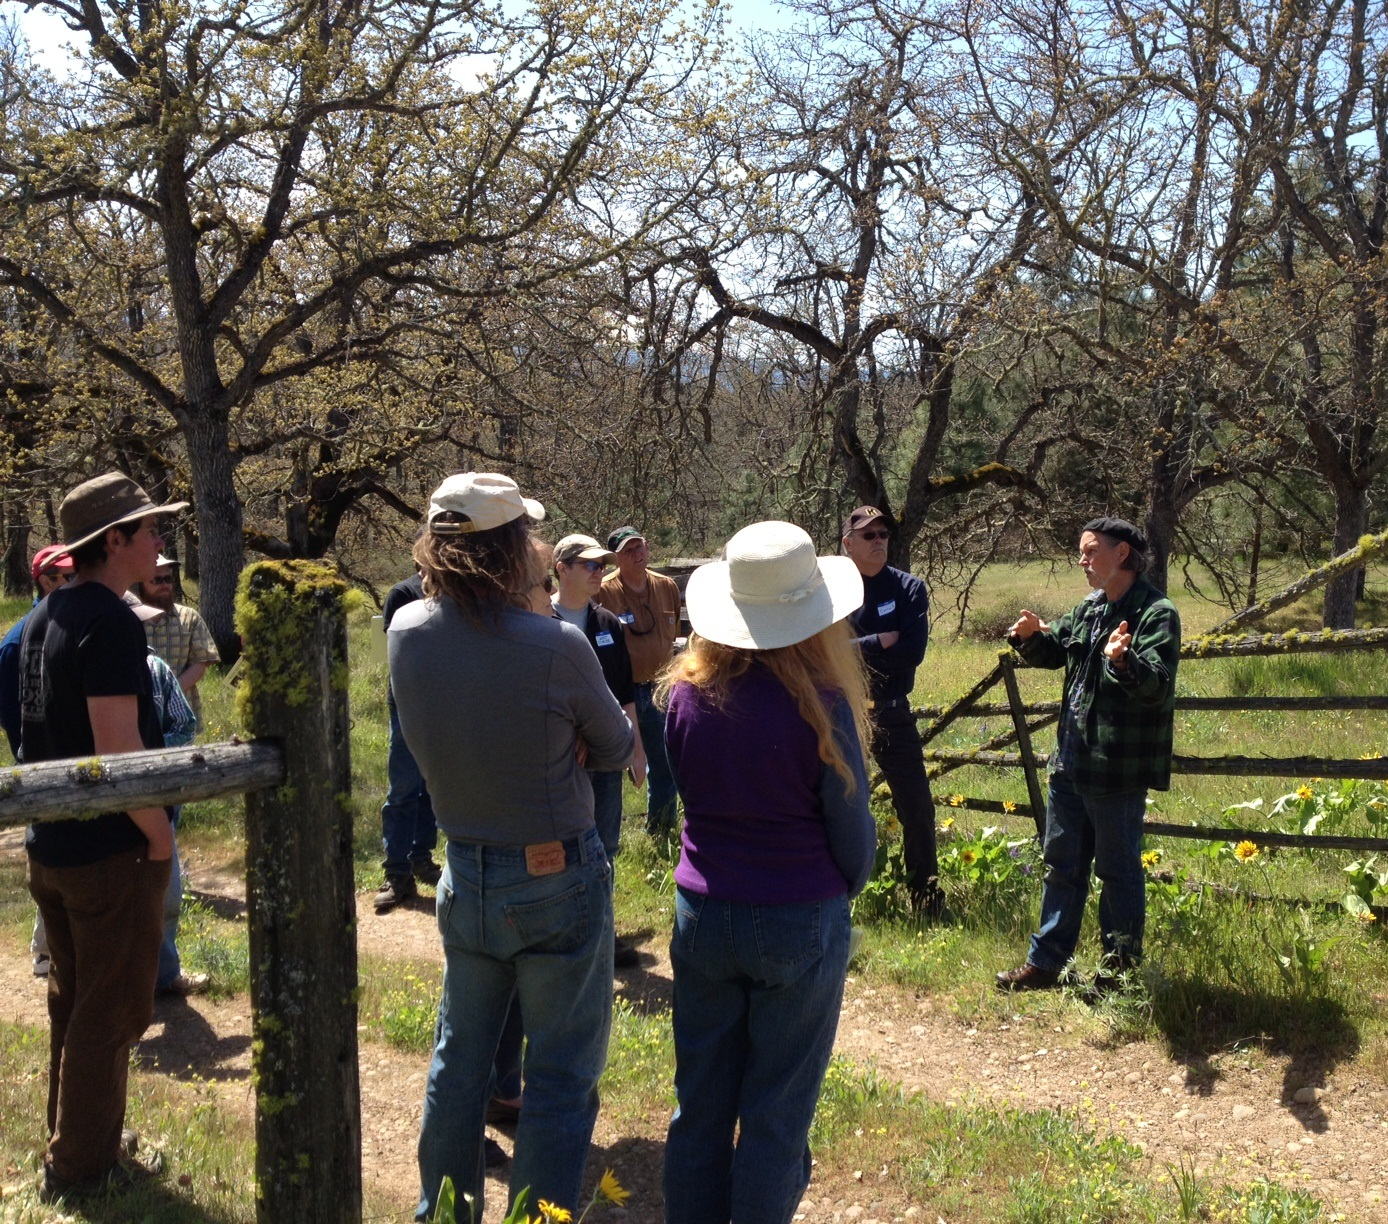 Robin explains the importance of threatened oak woodlands in an ecosystem.